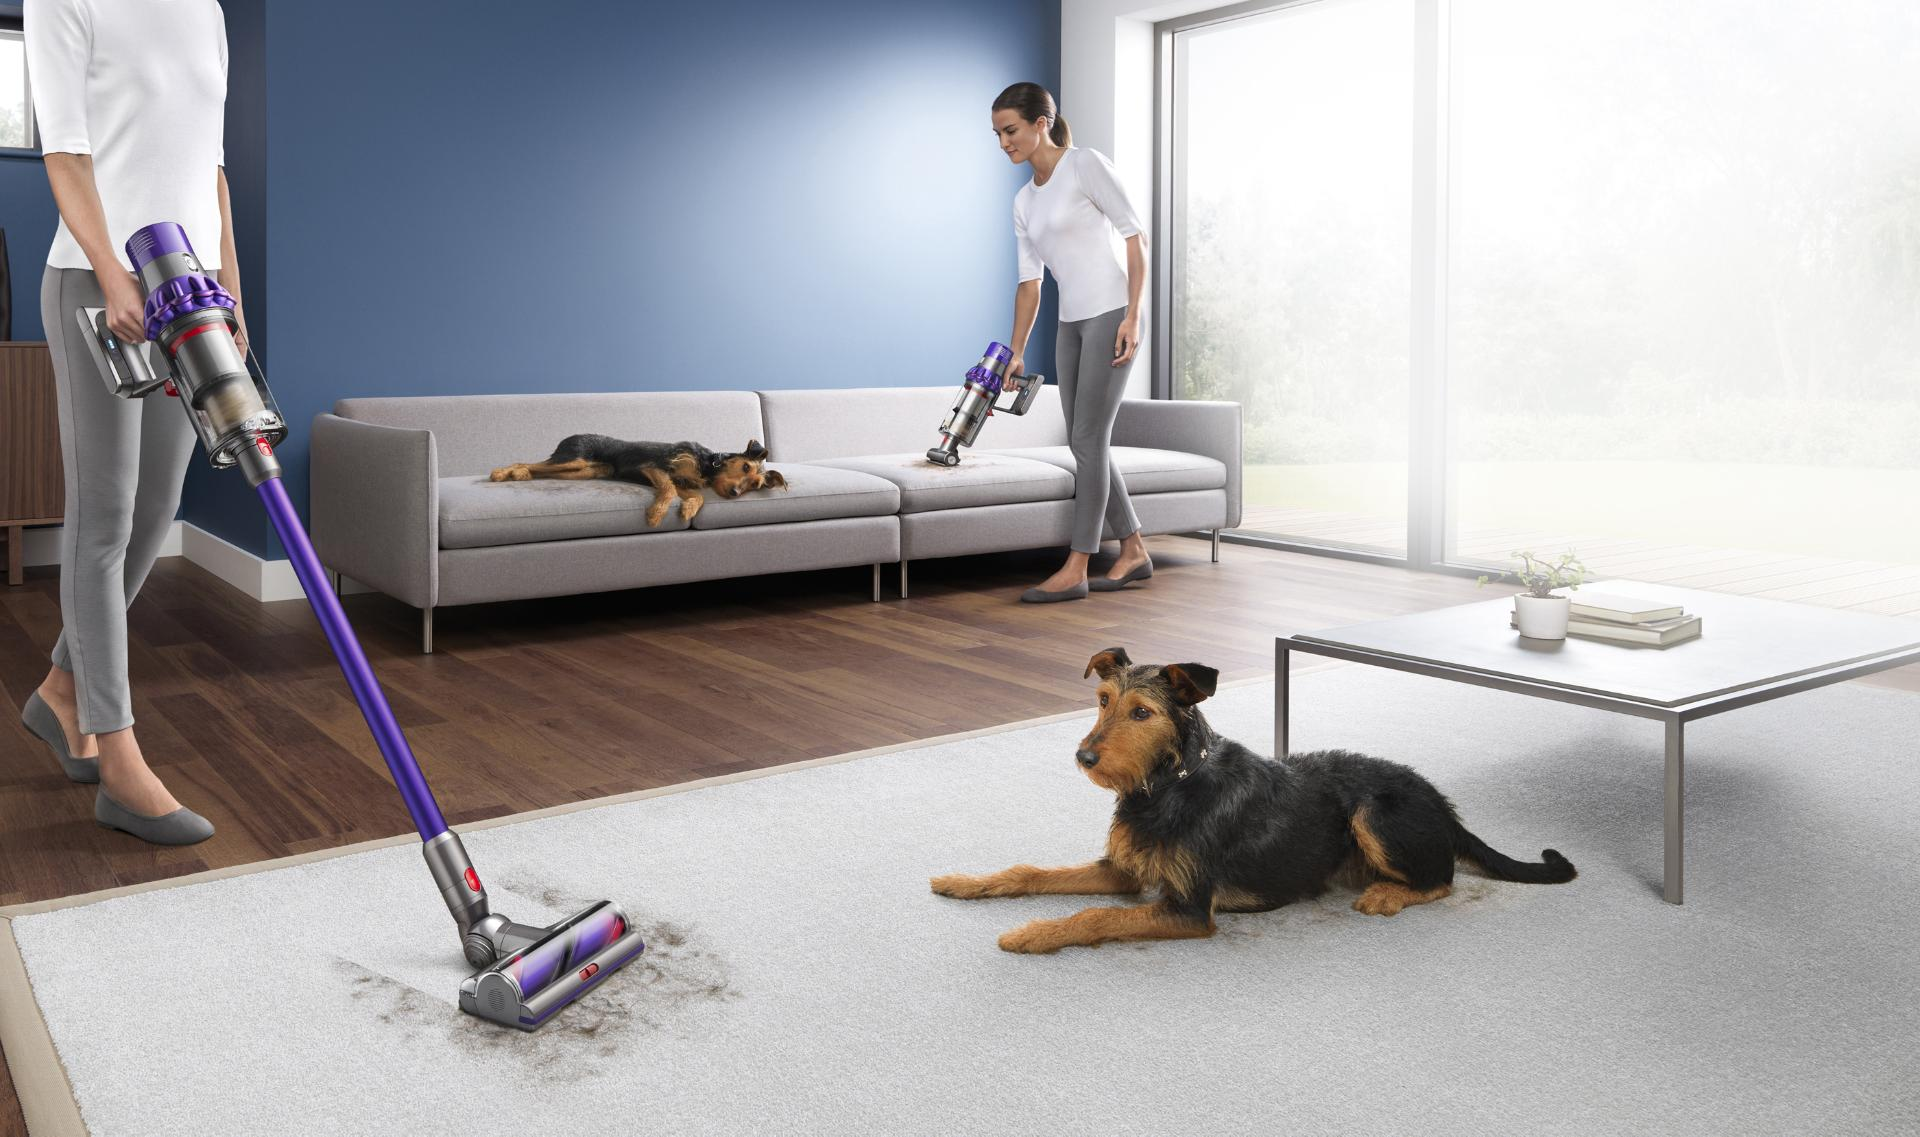 Dyson pet vacuum being used to clean up after a pet